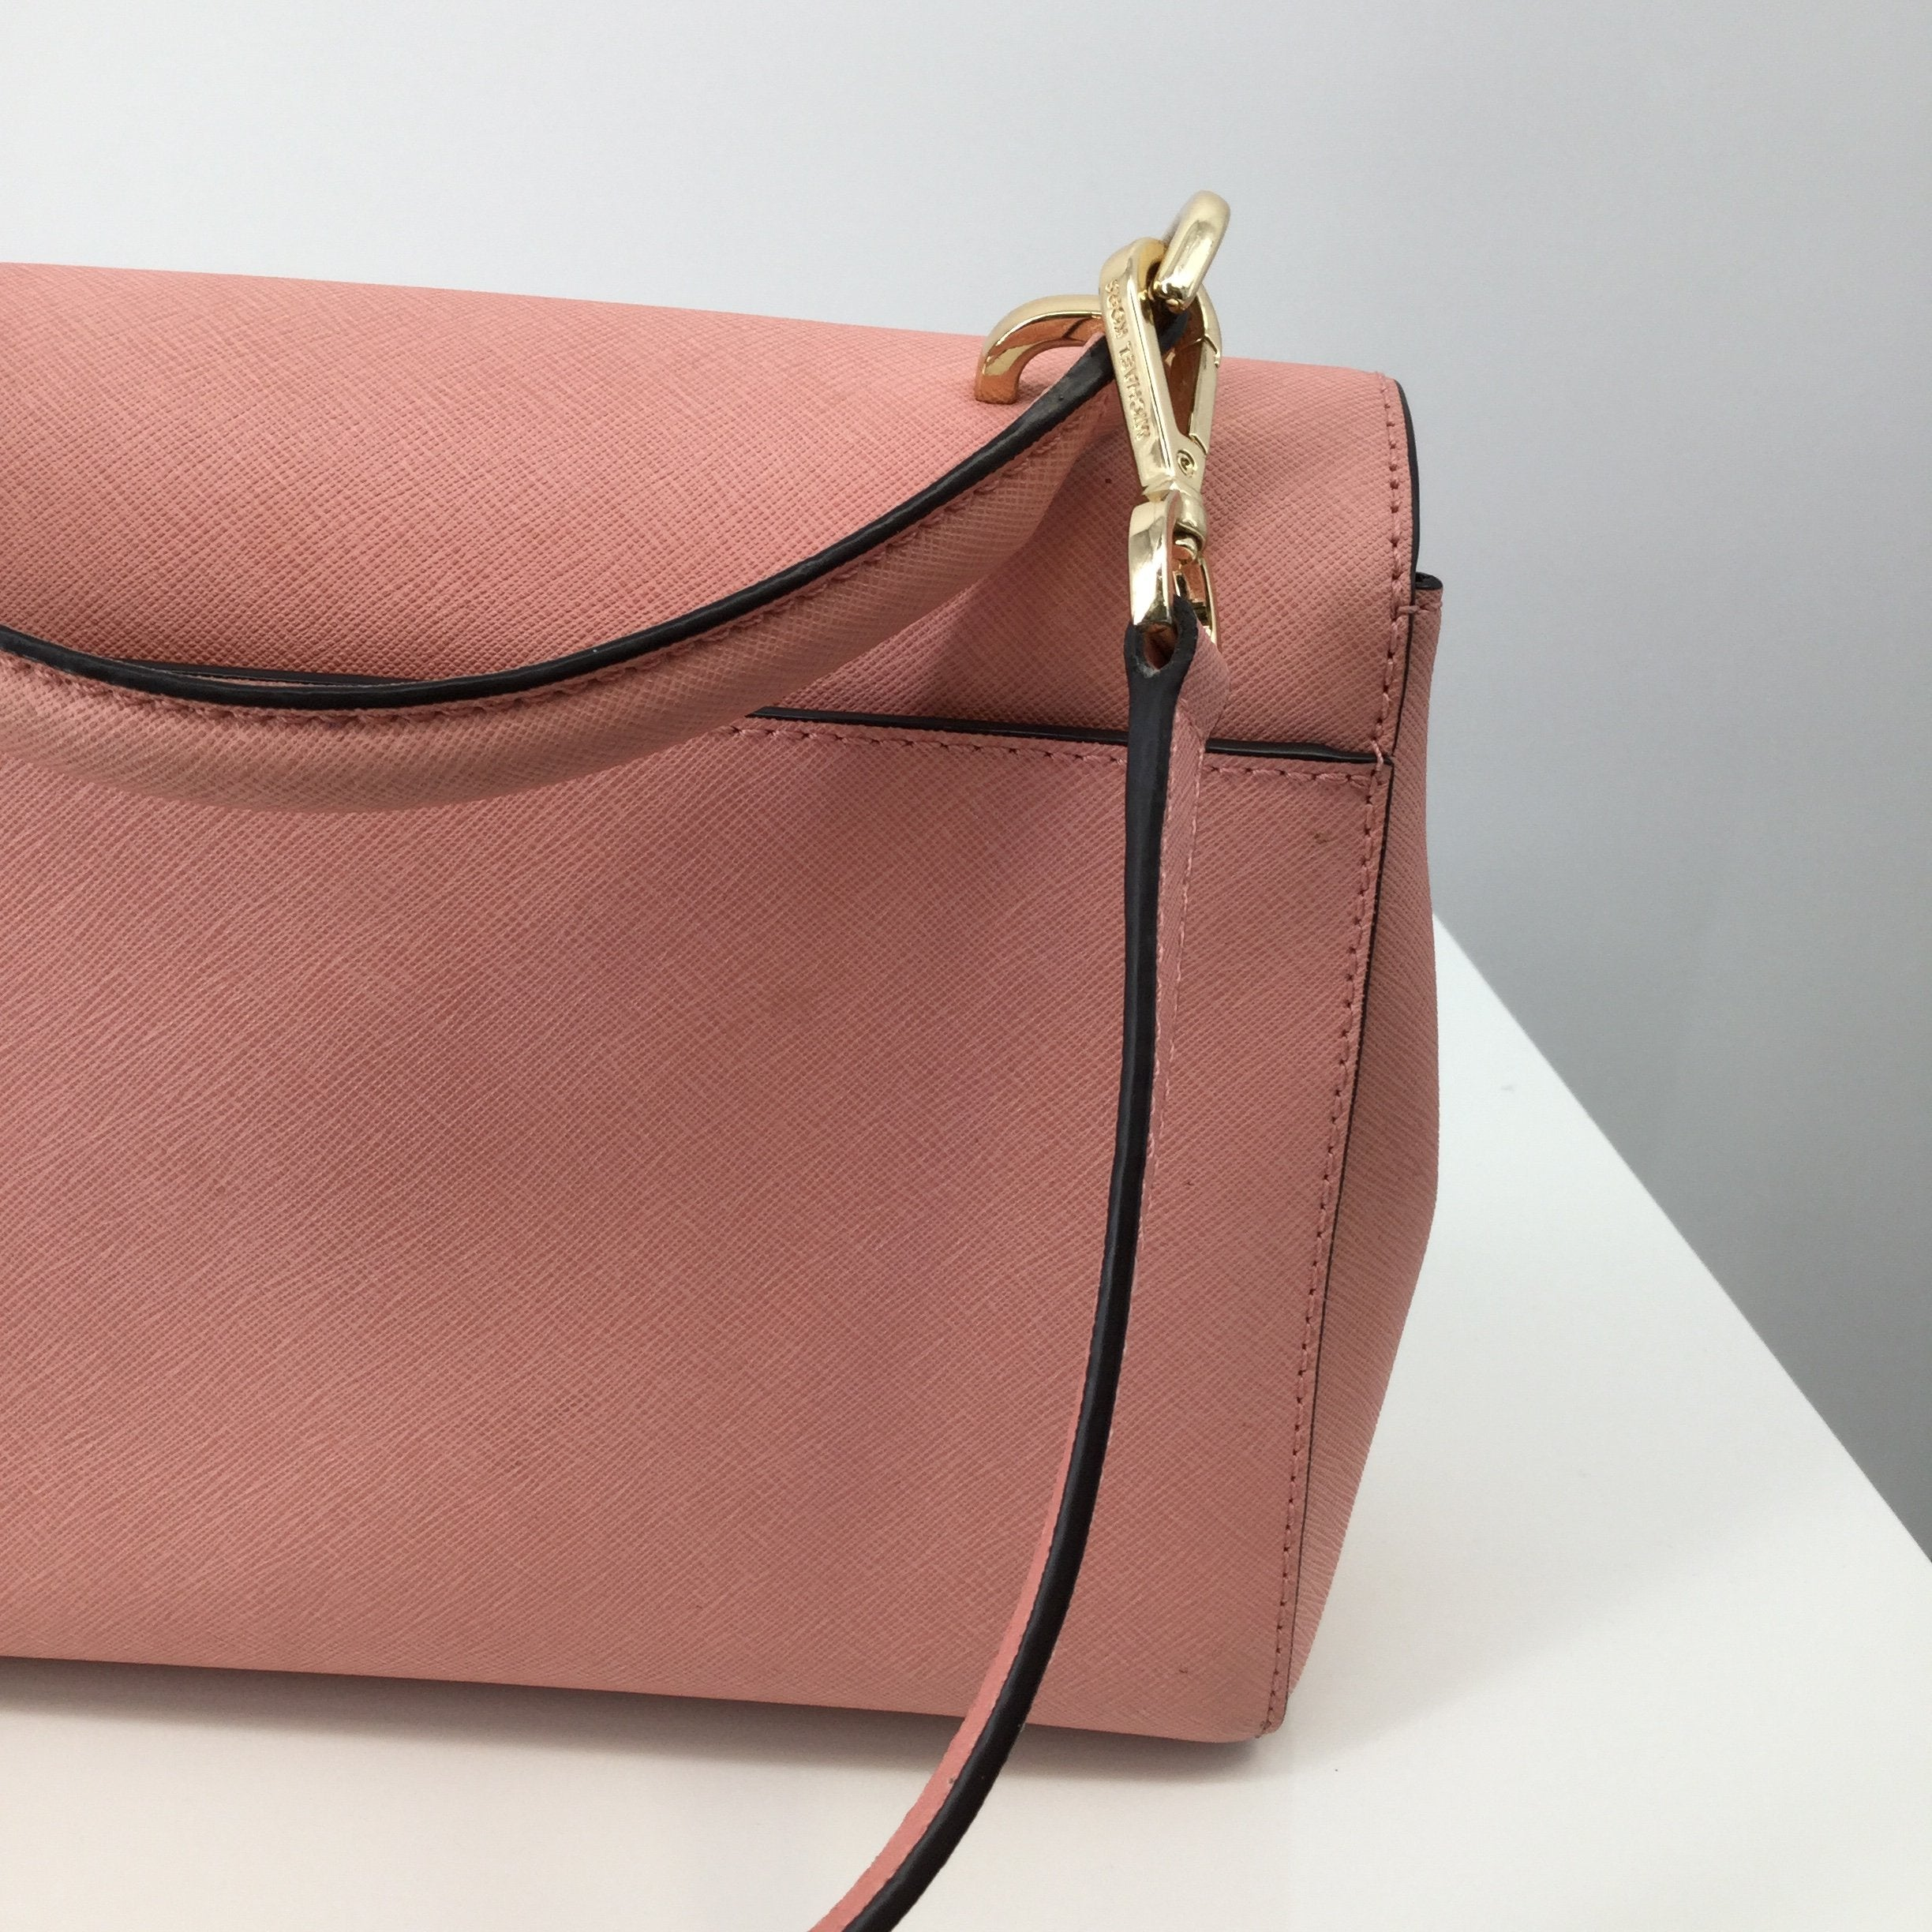 Michael Kors Handbag Designer, Leather, Pink, Size: Medium - <P>THIS PINK MICHAEL KORS HANDBAG IS SO CUTE! IT IS LEATHER WITH GOLD DETAILS. THERE IS A POCKET ON THE BACK AND TWO POCKETS INSIDE. THE STRAP IS ADJUSTABLE. CONDITION IS GOOD. DUST BAG INCLUDED.</P>